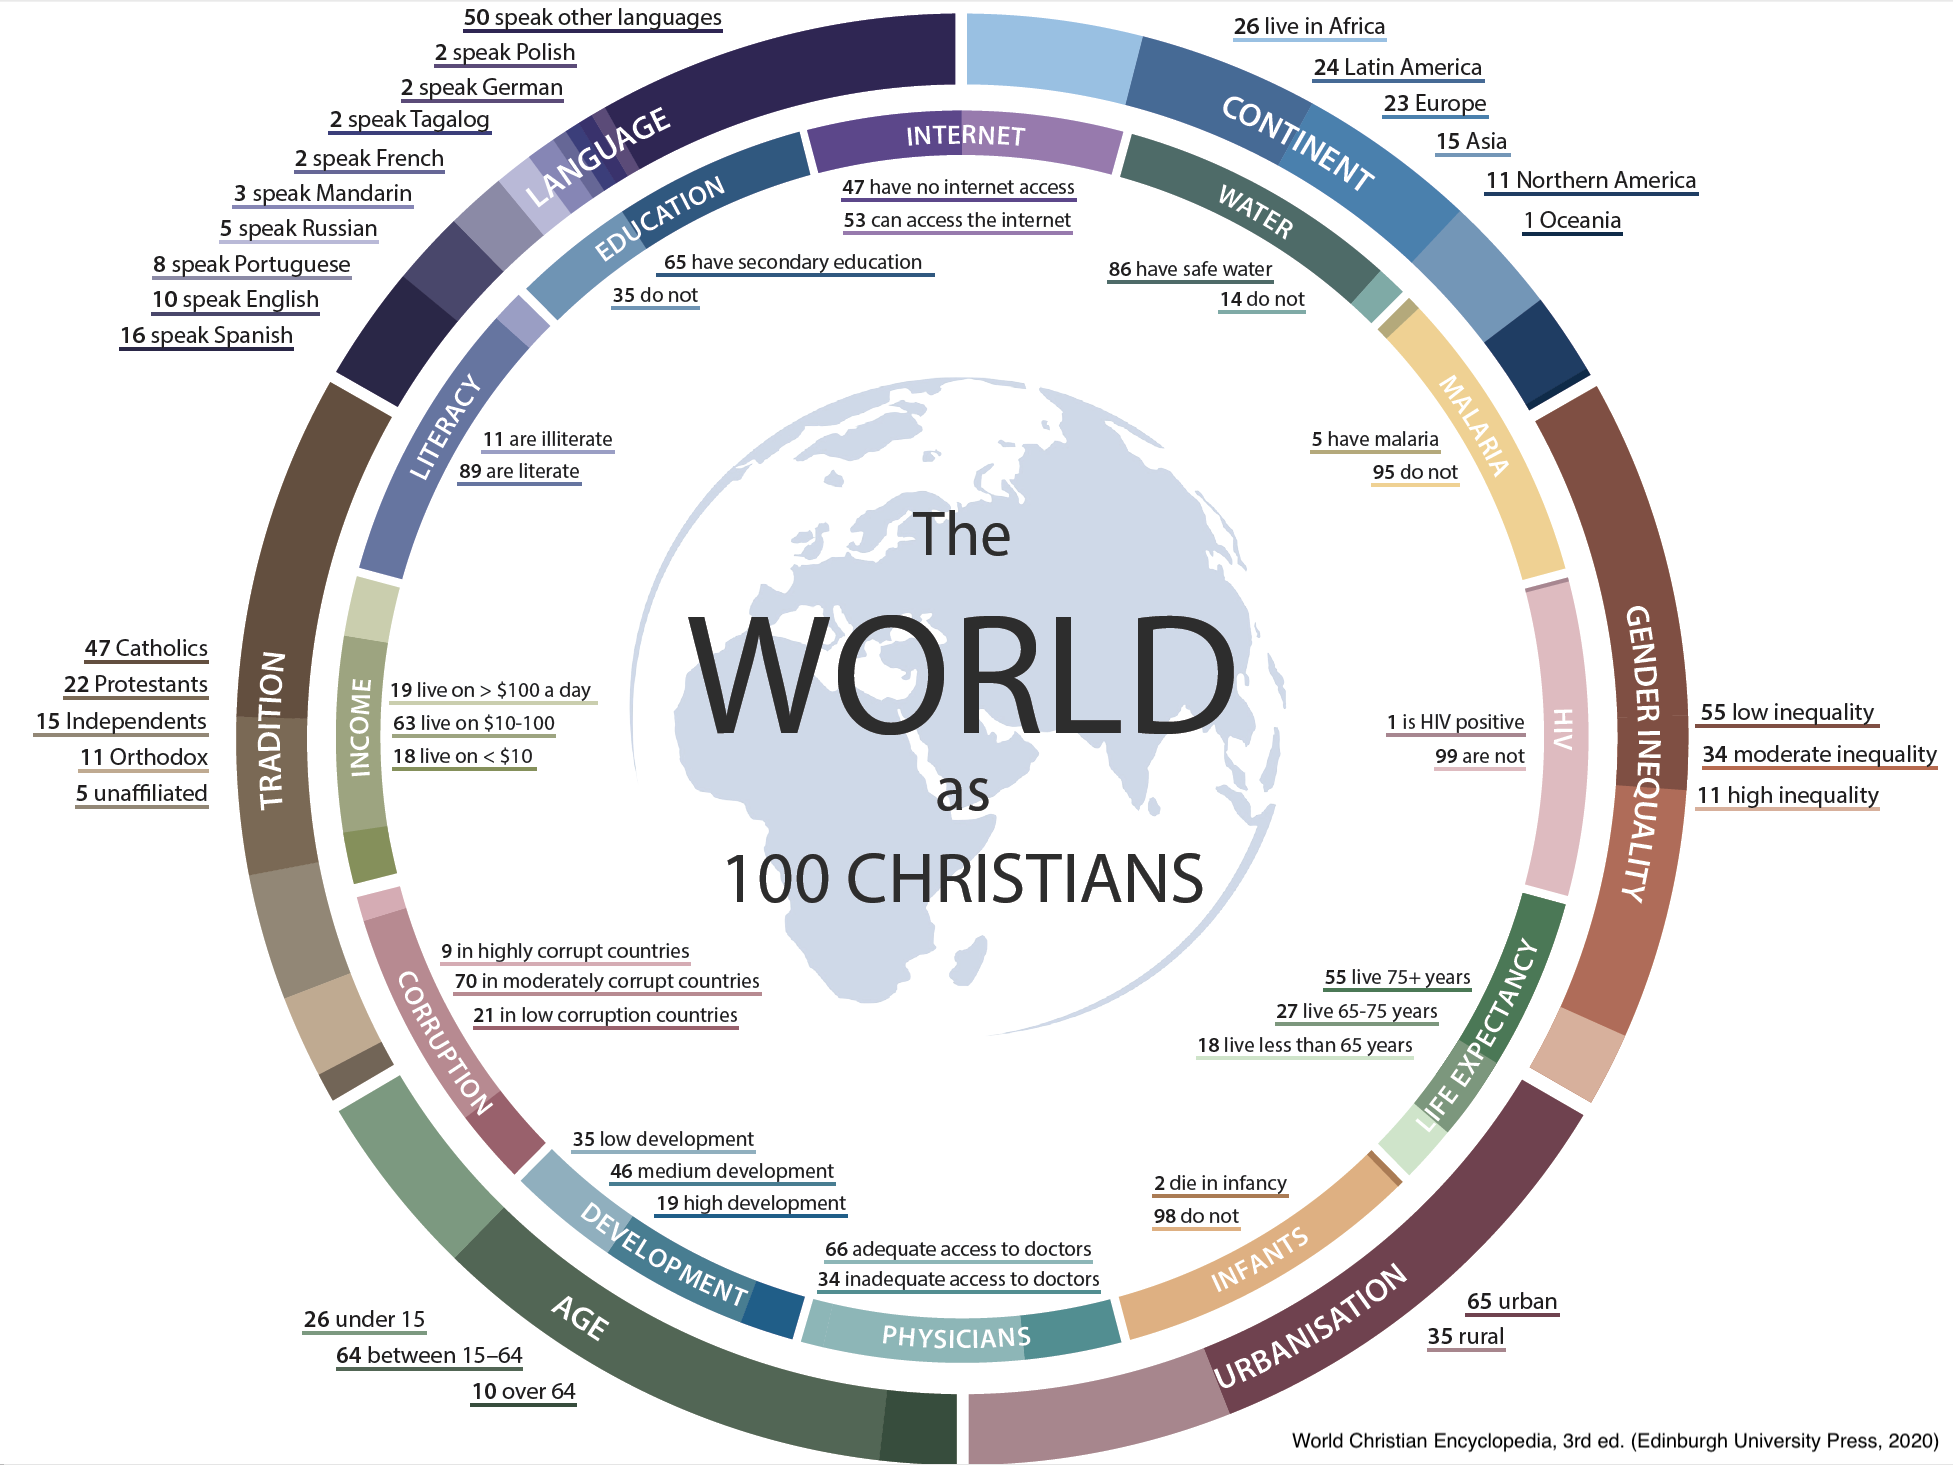 The World as 100 Christians